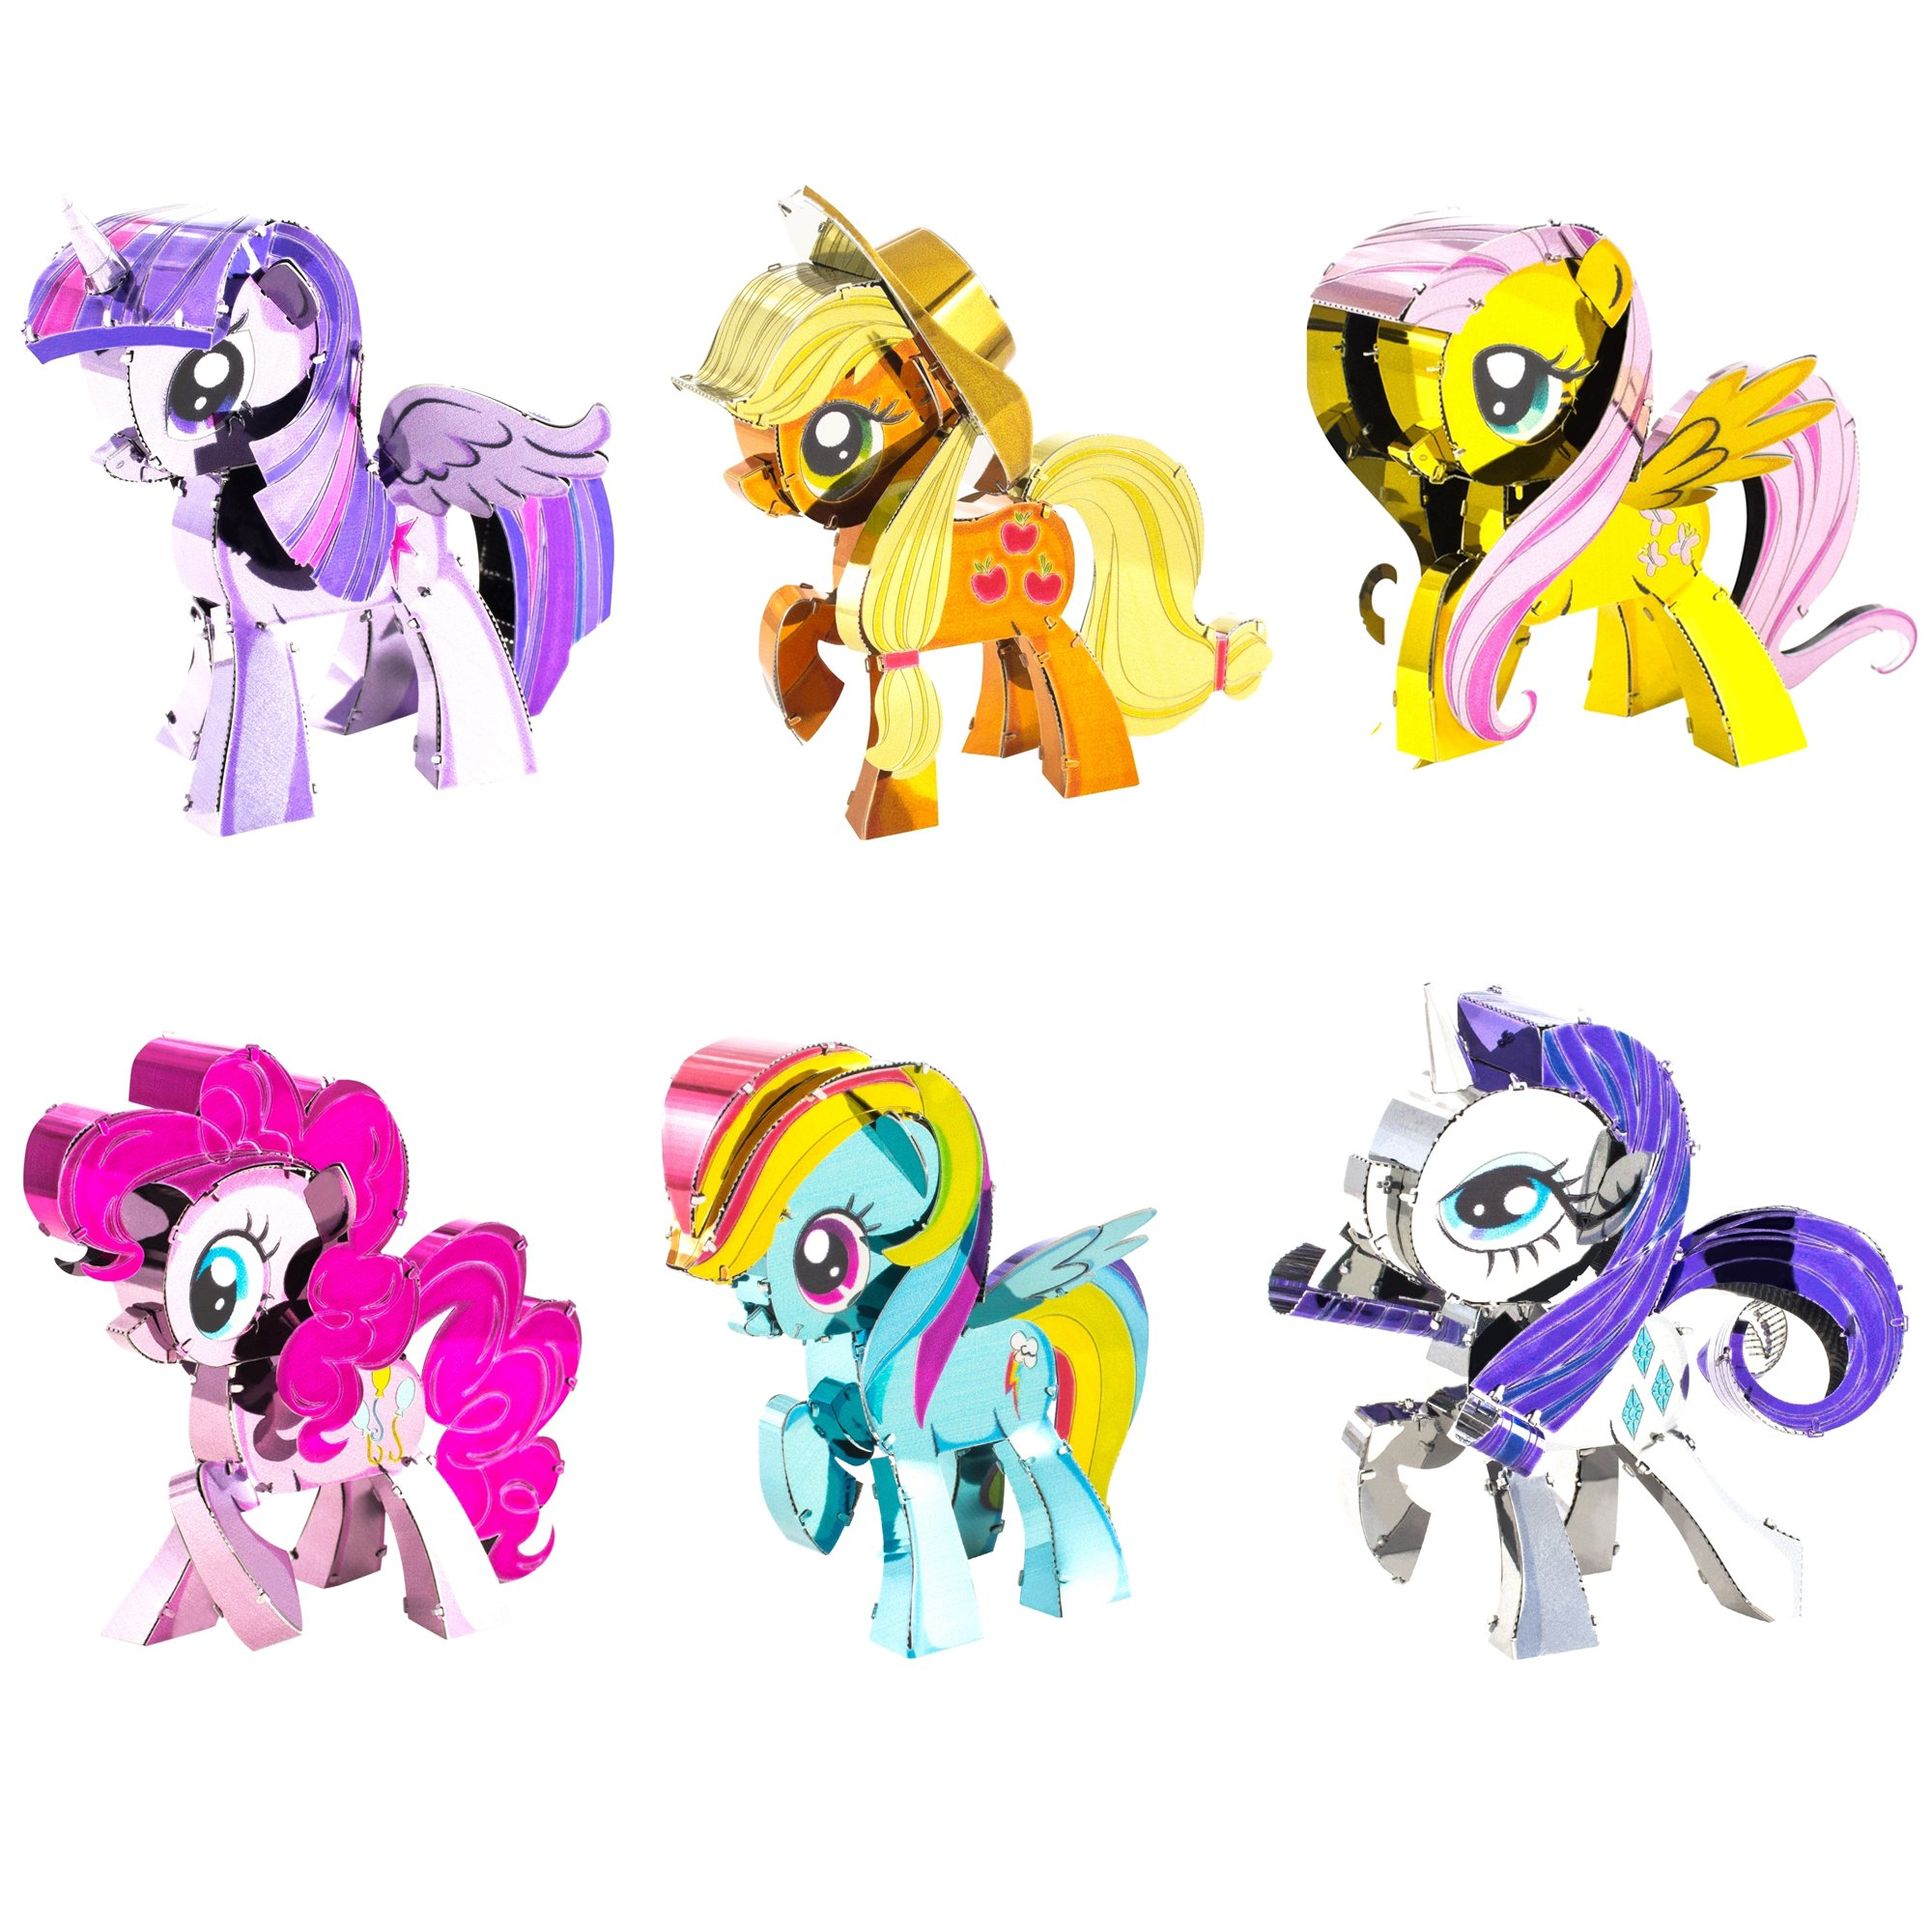 Fascinations Metal Earth 3D Metal Model Kits My Little Pony Complete Set of 6 Applejack - Fluttershy - Pinkie Pie - Rainbow Dash - Rarity - Twilight Sparkle